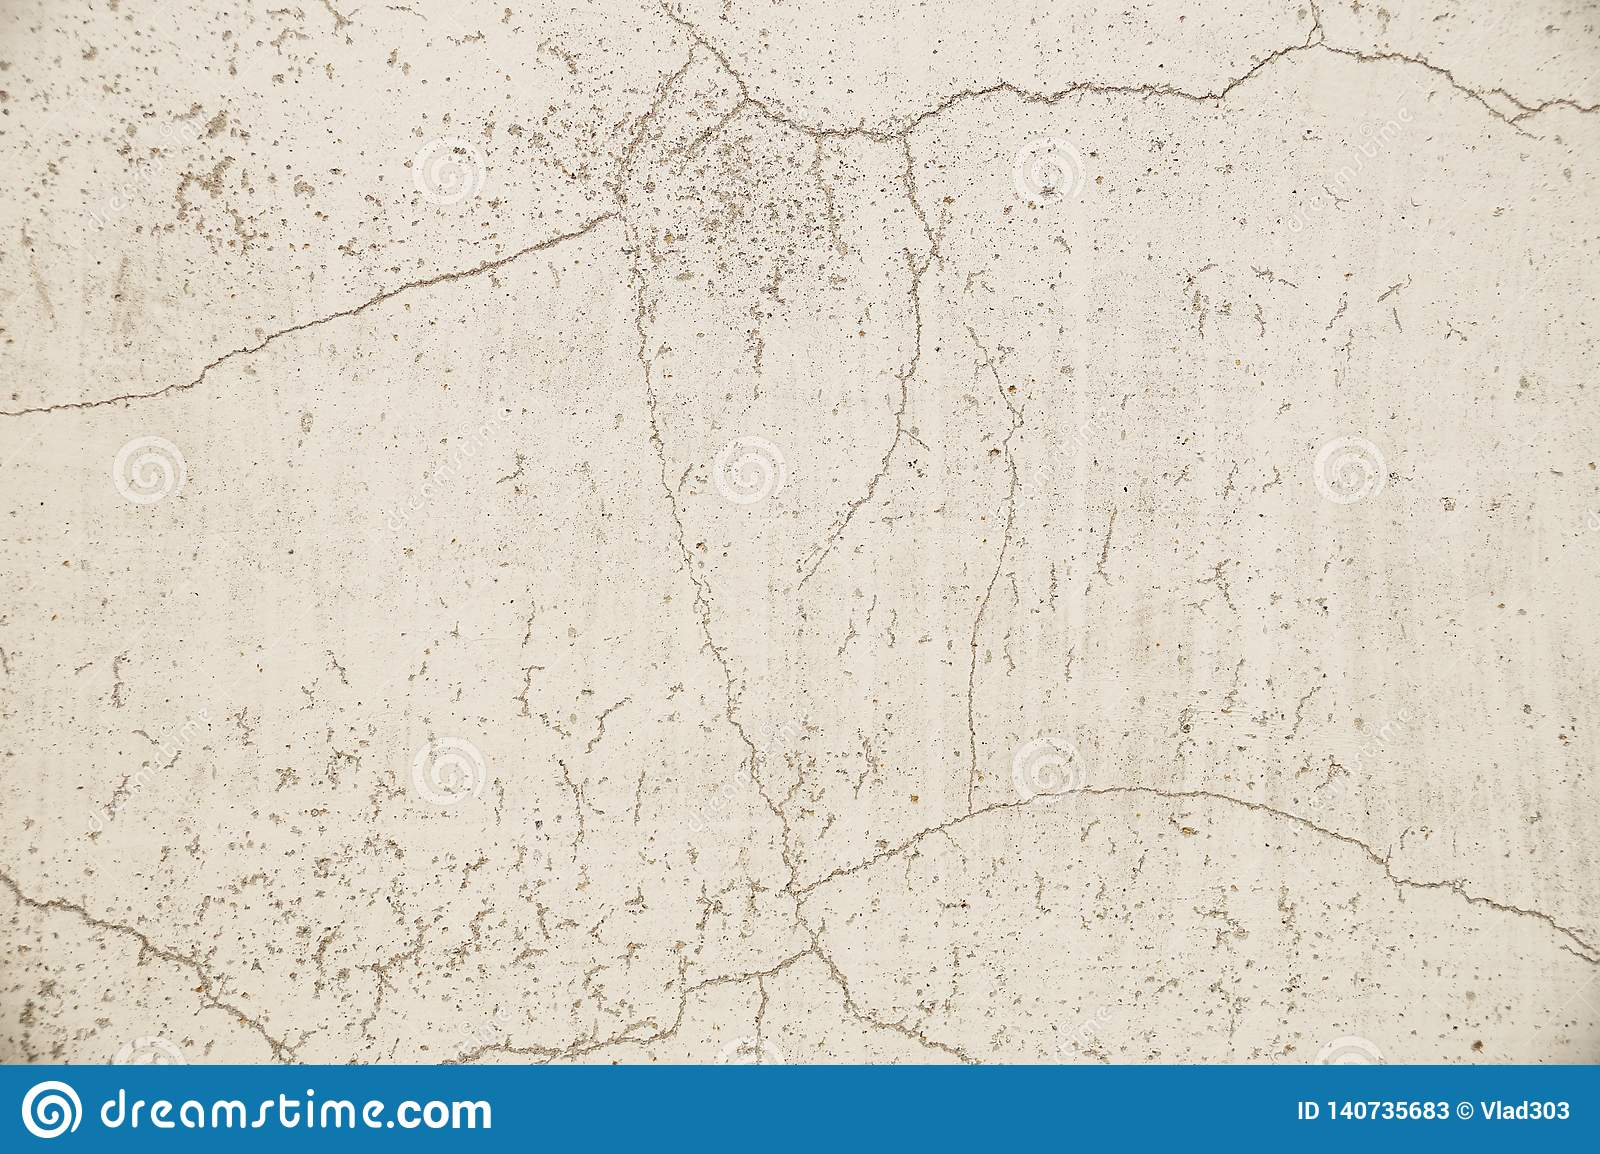 Close-up on a plastered painted wall. Light gray, old, cracked wall surface